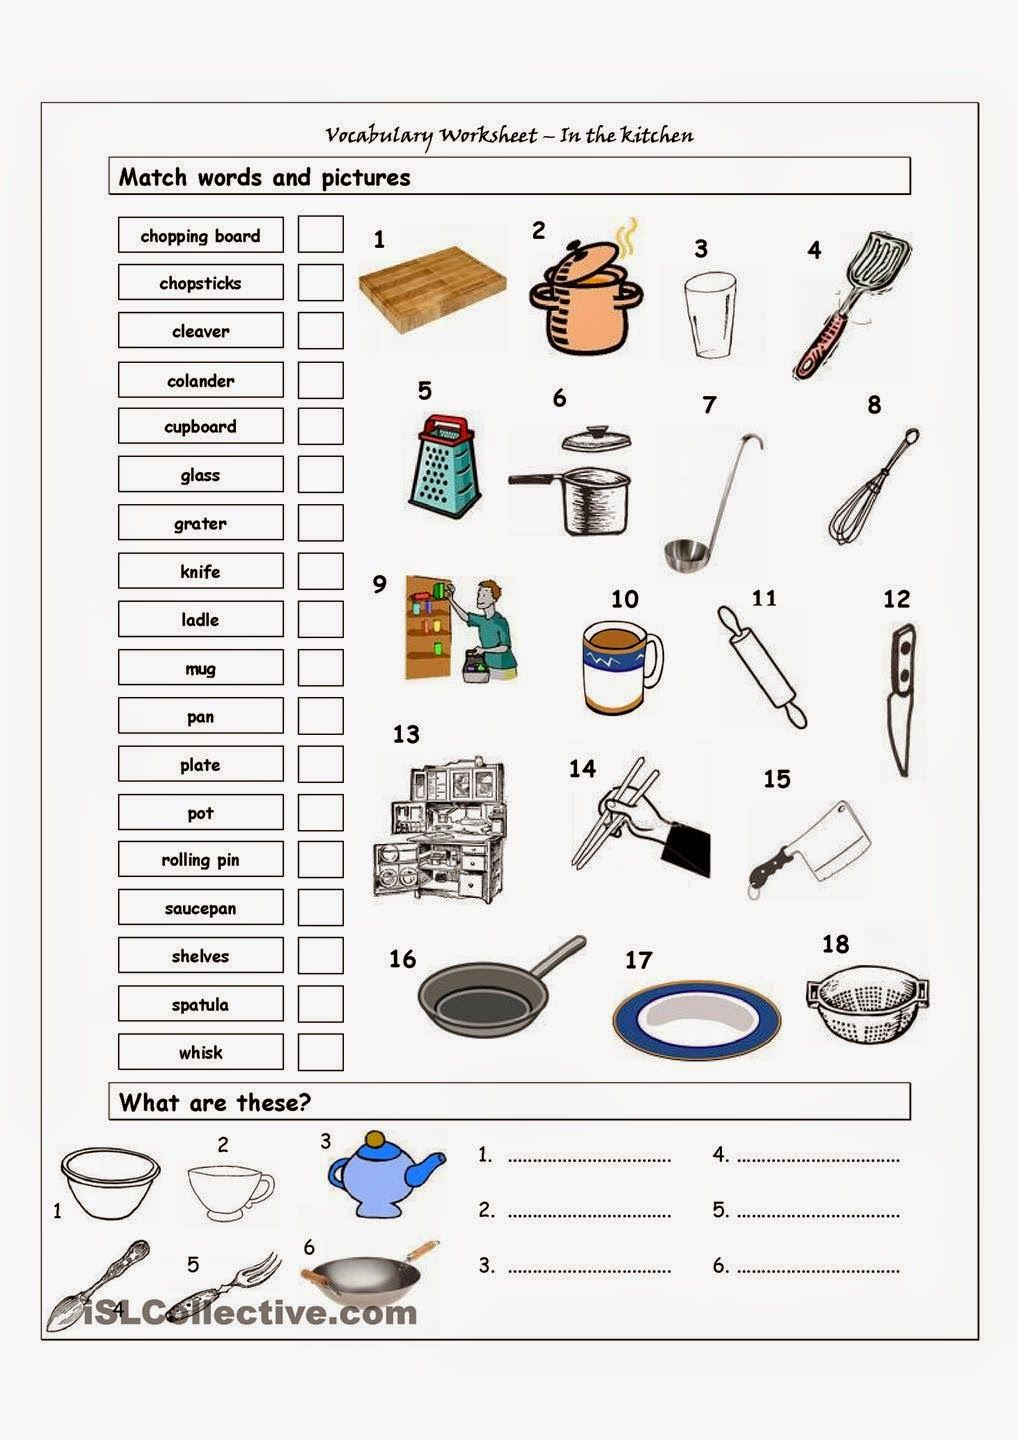 Vocabulary worksheet containing KITCHEN vocabulary  It has two sections   Match words and pictures  matching exercise  and Write the Words  creative. download furniture images vocabulary   Buscar con Google